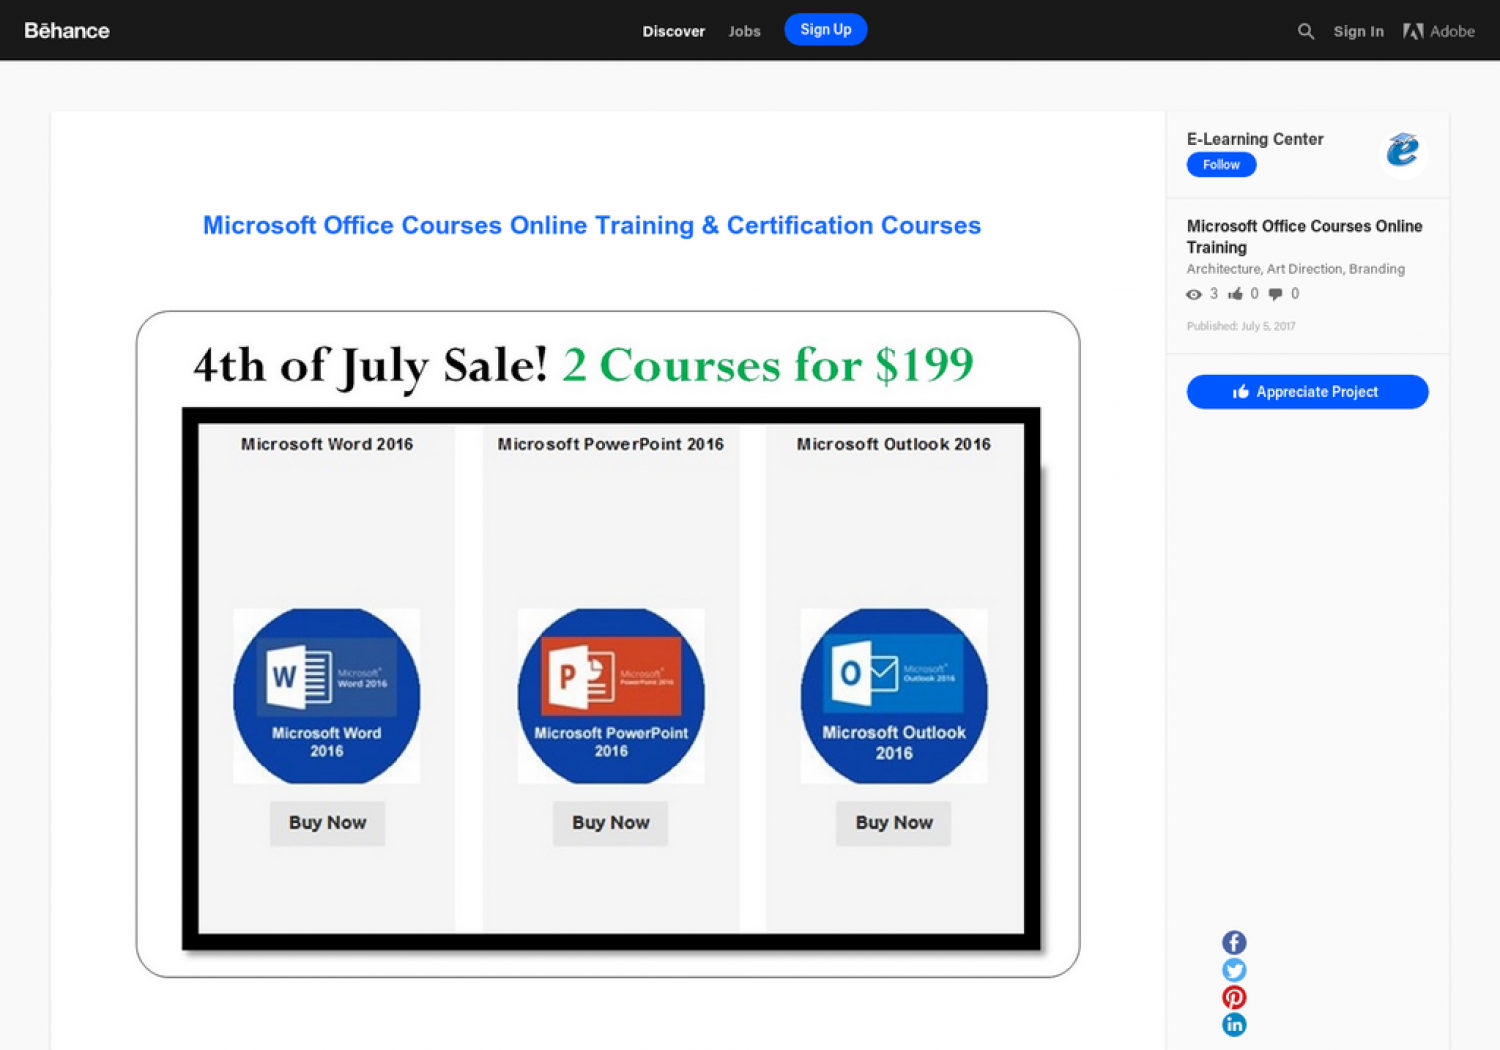 Microsoft Office Courses Online Training Certification Courses